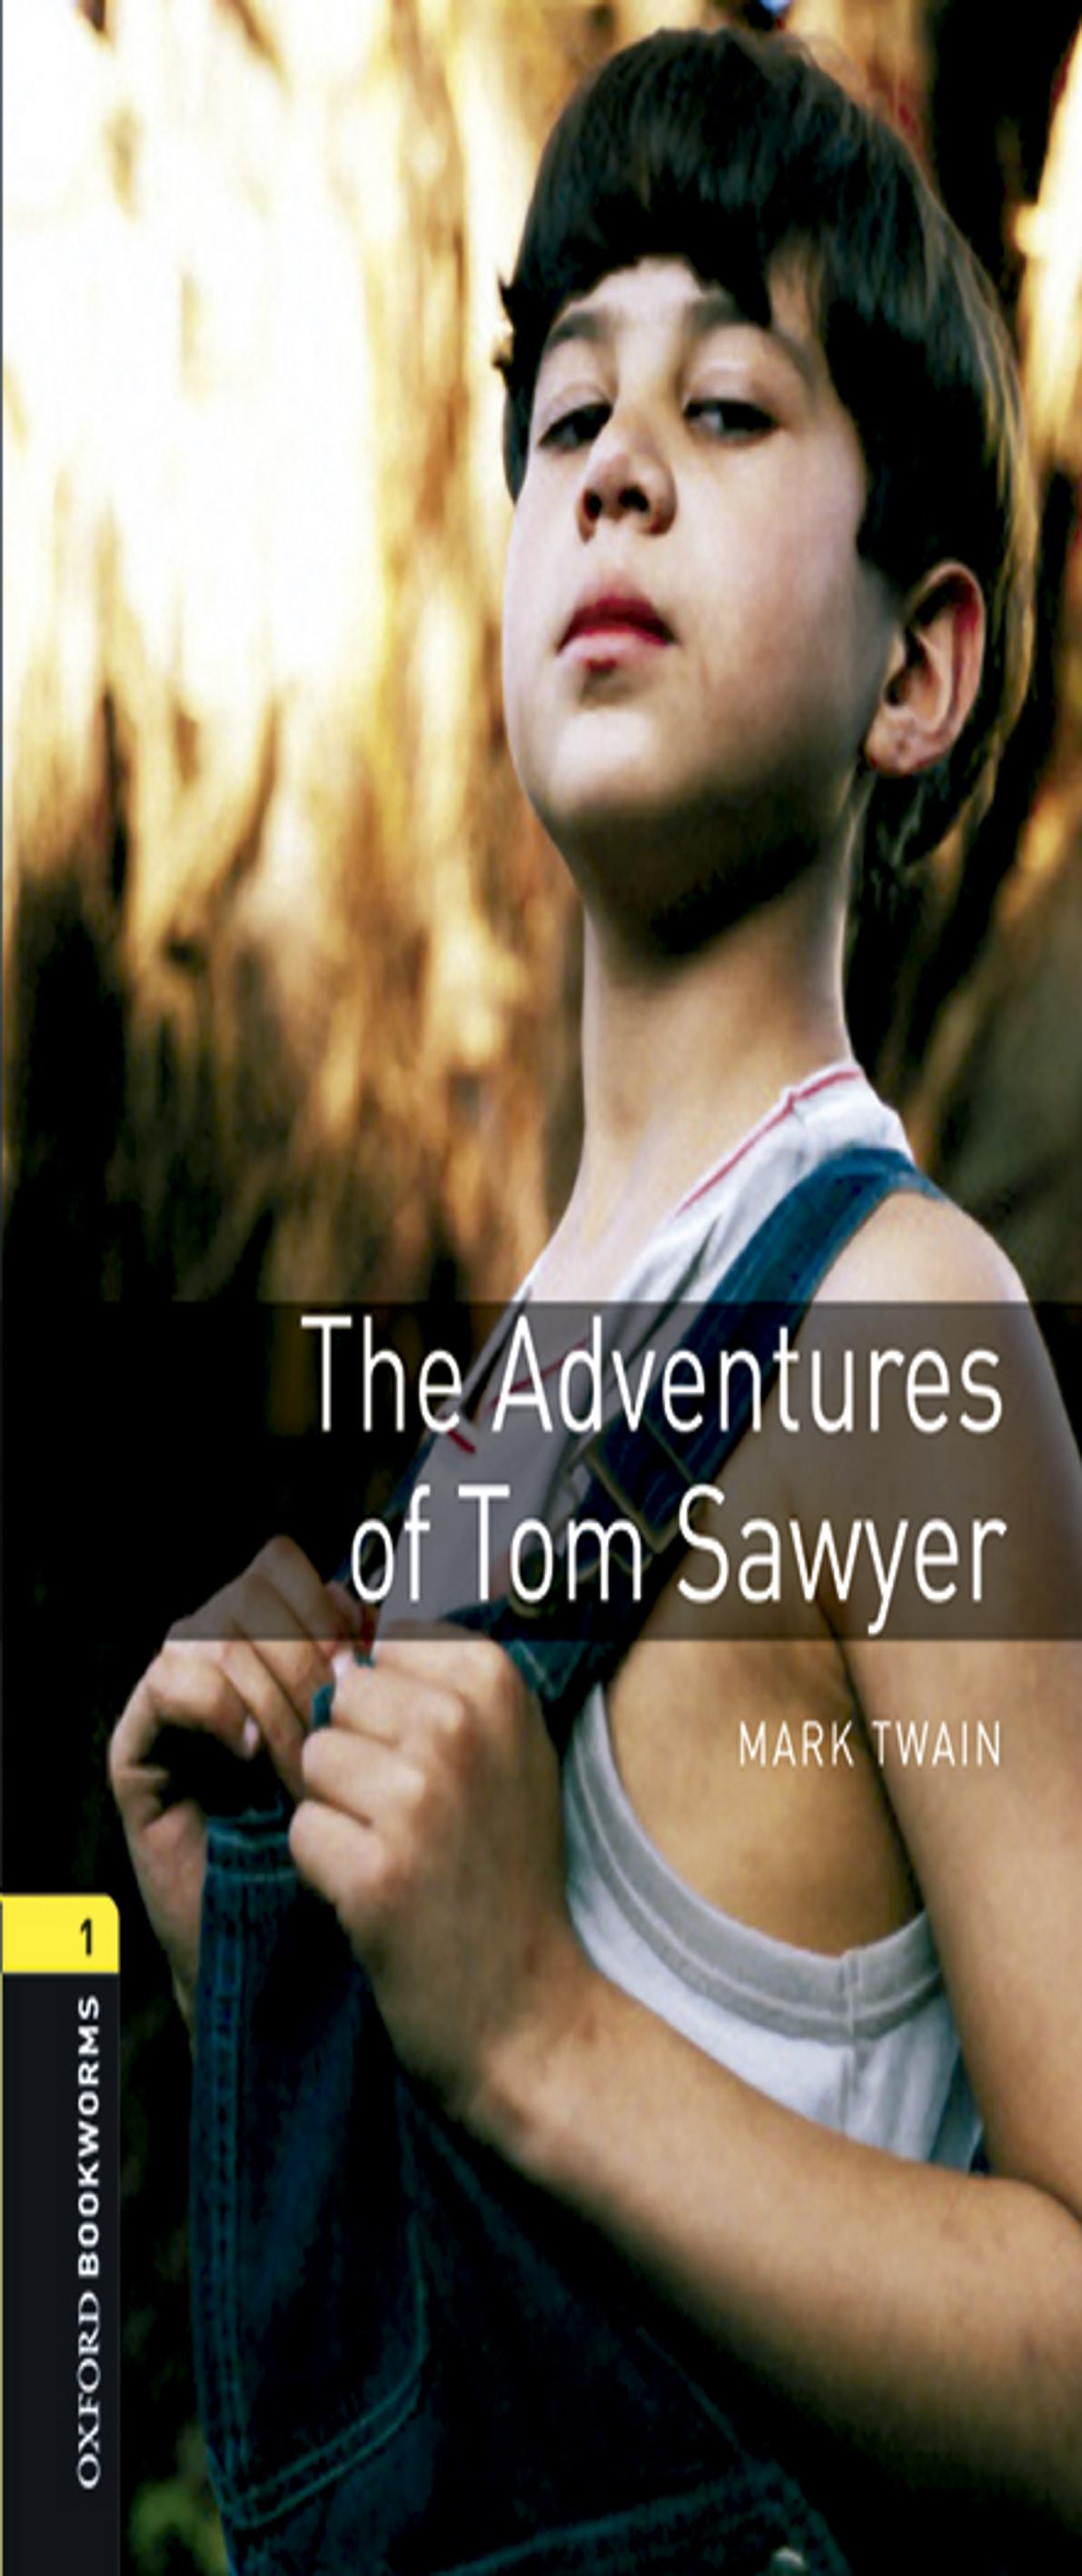 ADVENTURES OF TOM SAWYER , THE + audio download - OBL 1